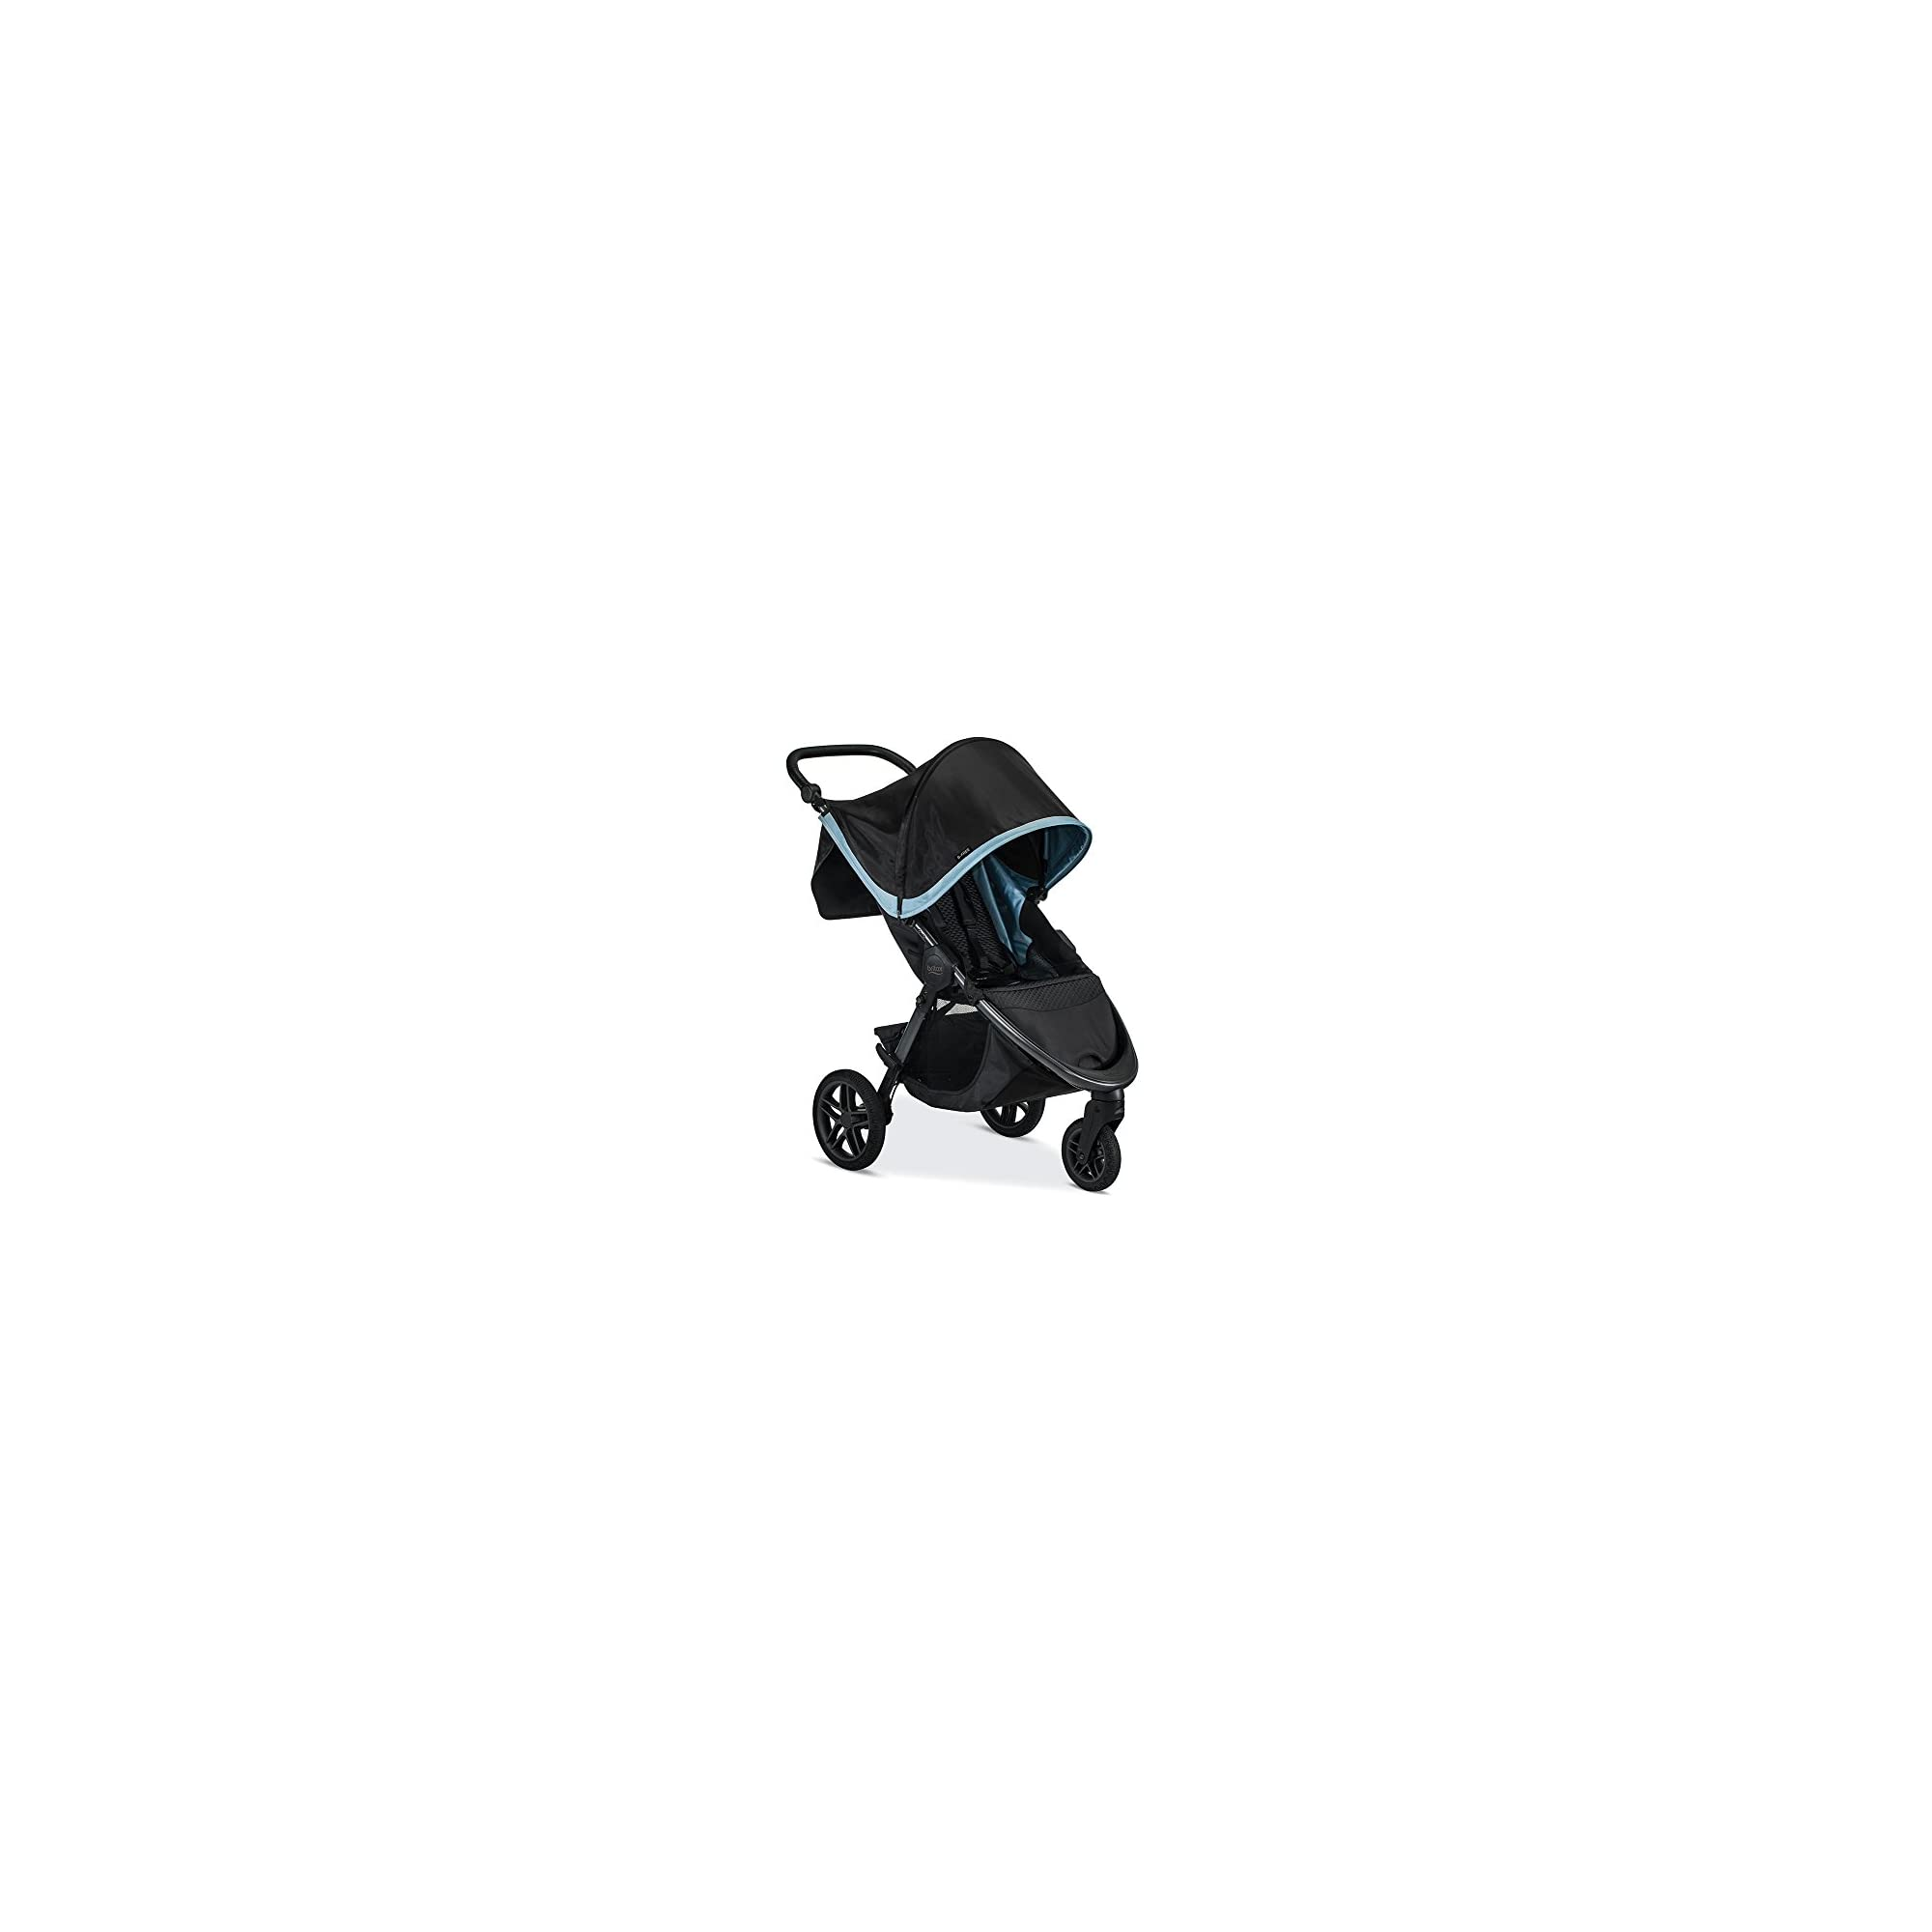 Britax B-Free Travel System with B-Safe Endeavours Infant Car Seat – Birth to 65 Pounds, Frost